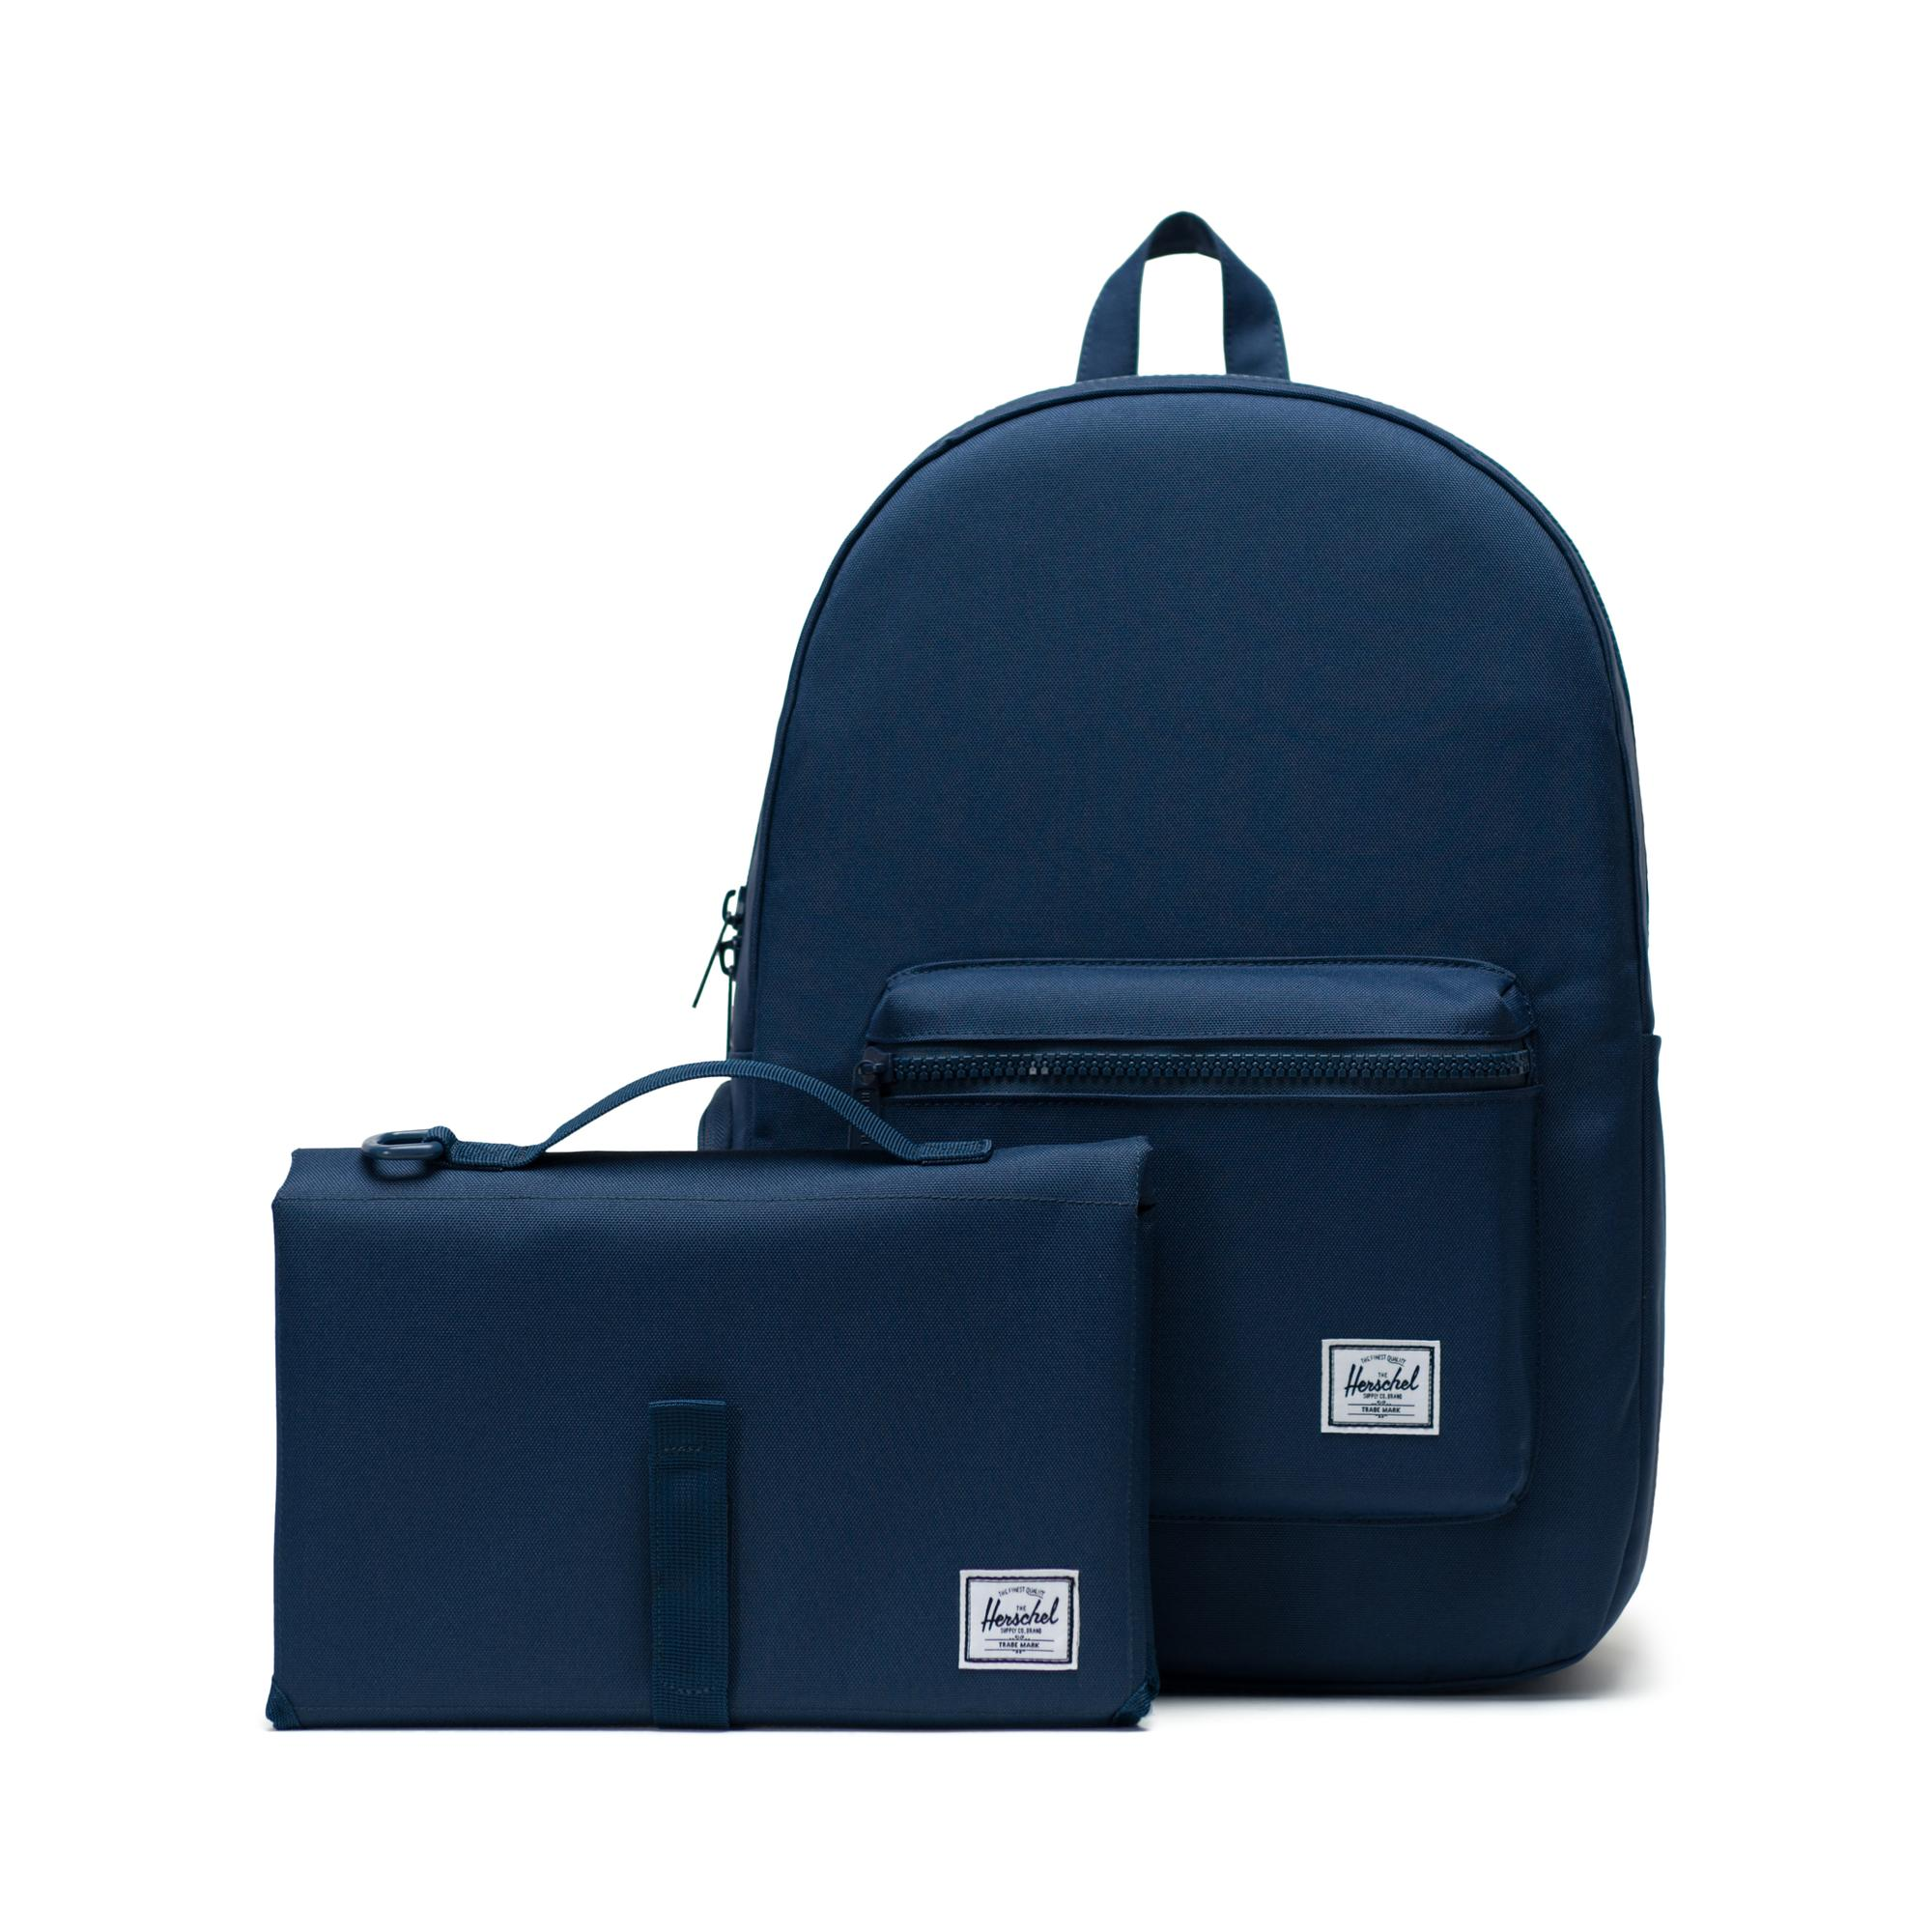 a7429e0b5f67 Settlement Backpack Sprout